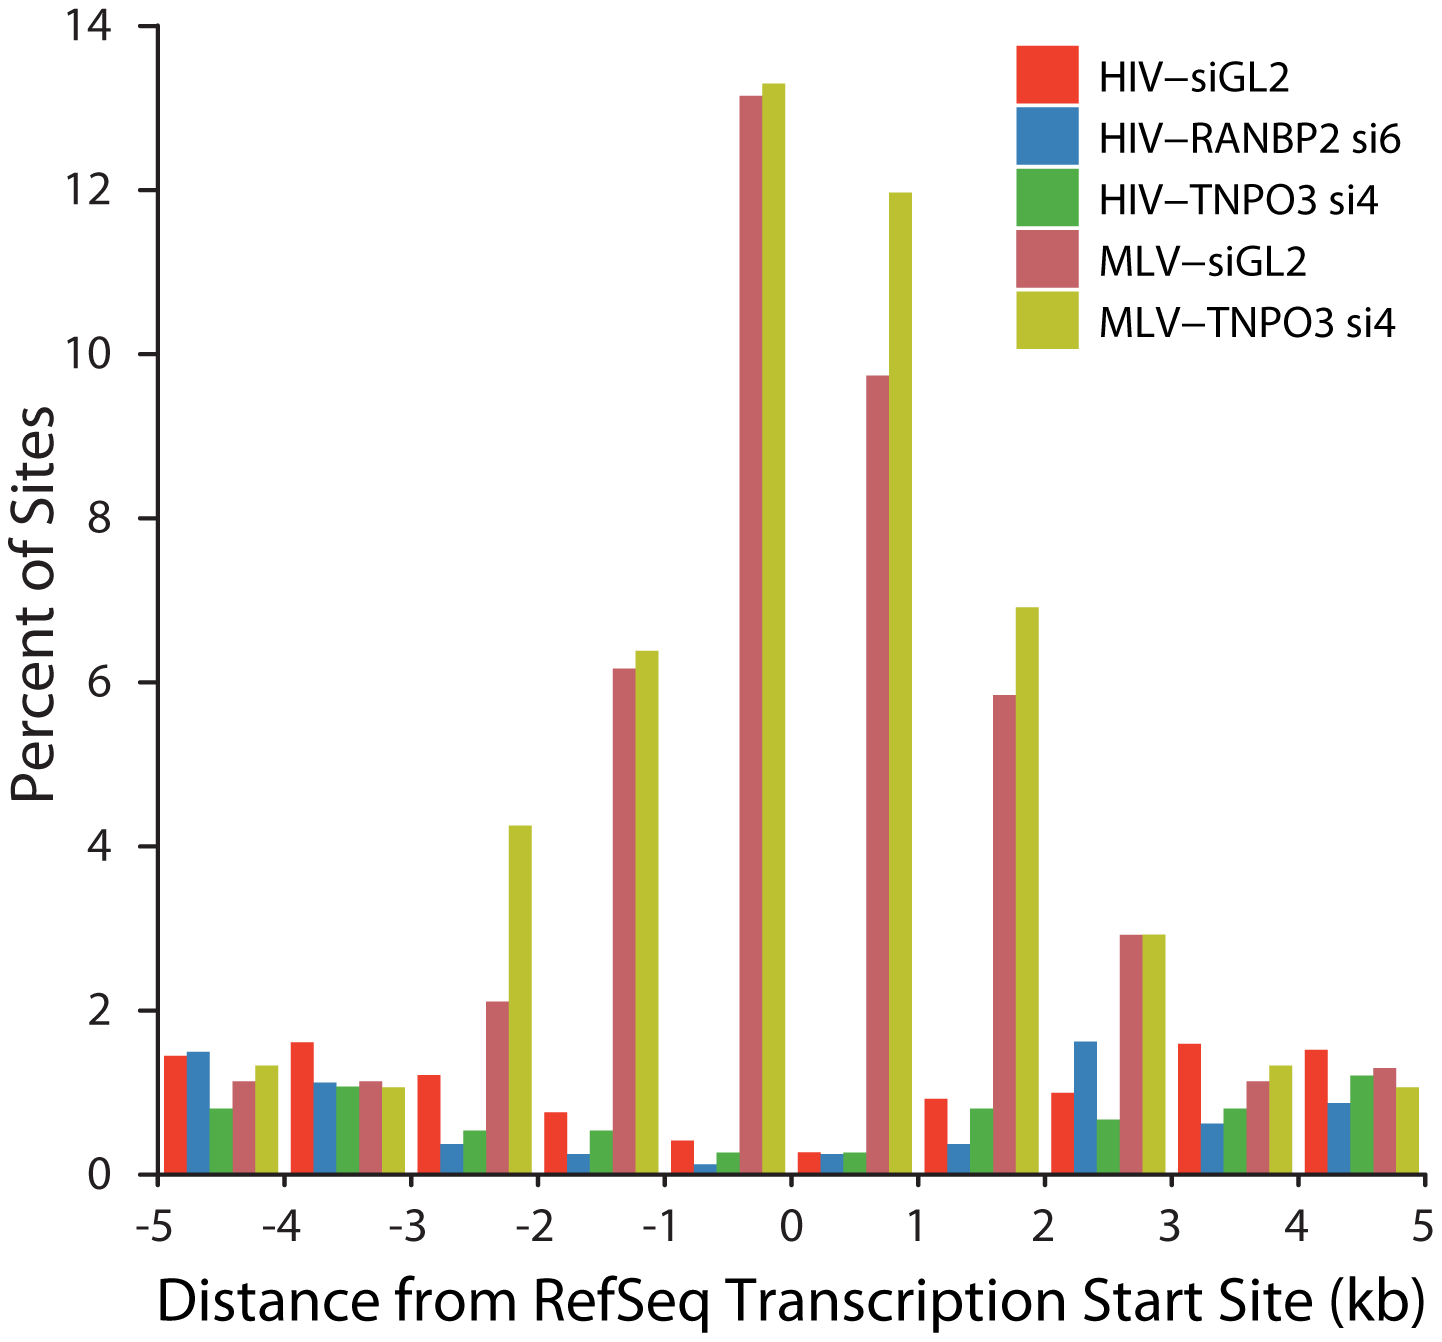 HIV and MLV integration patterns at transcription start sites are unaffected by knockdown of TNPO3 or RANBP2.